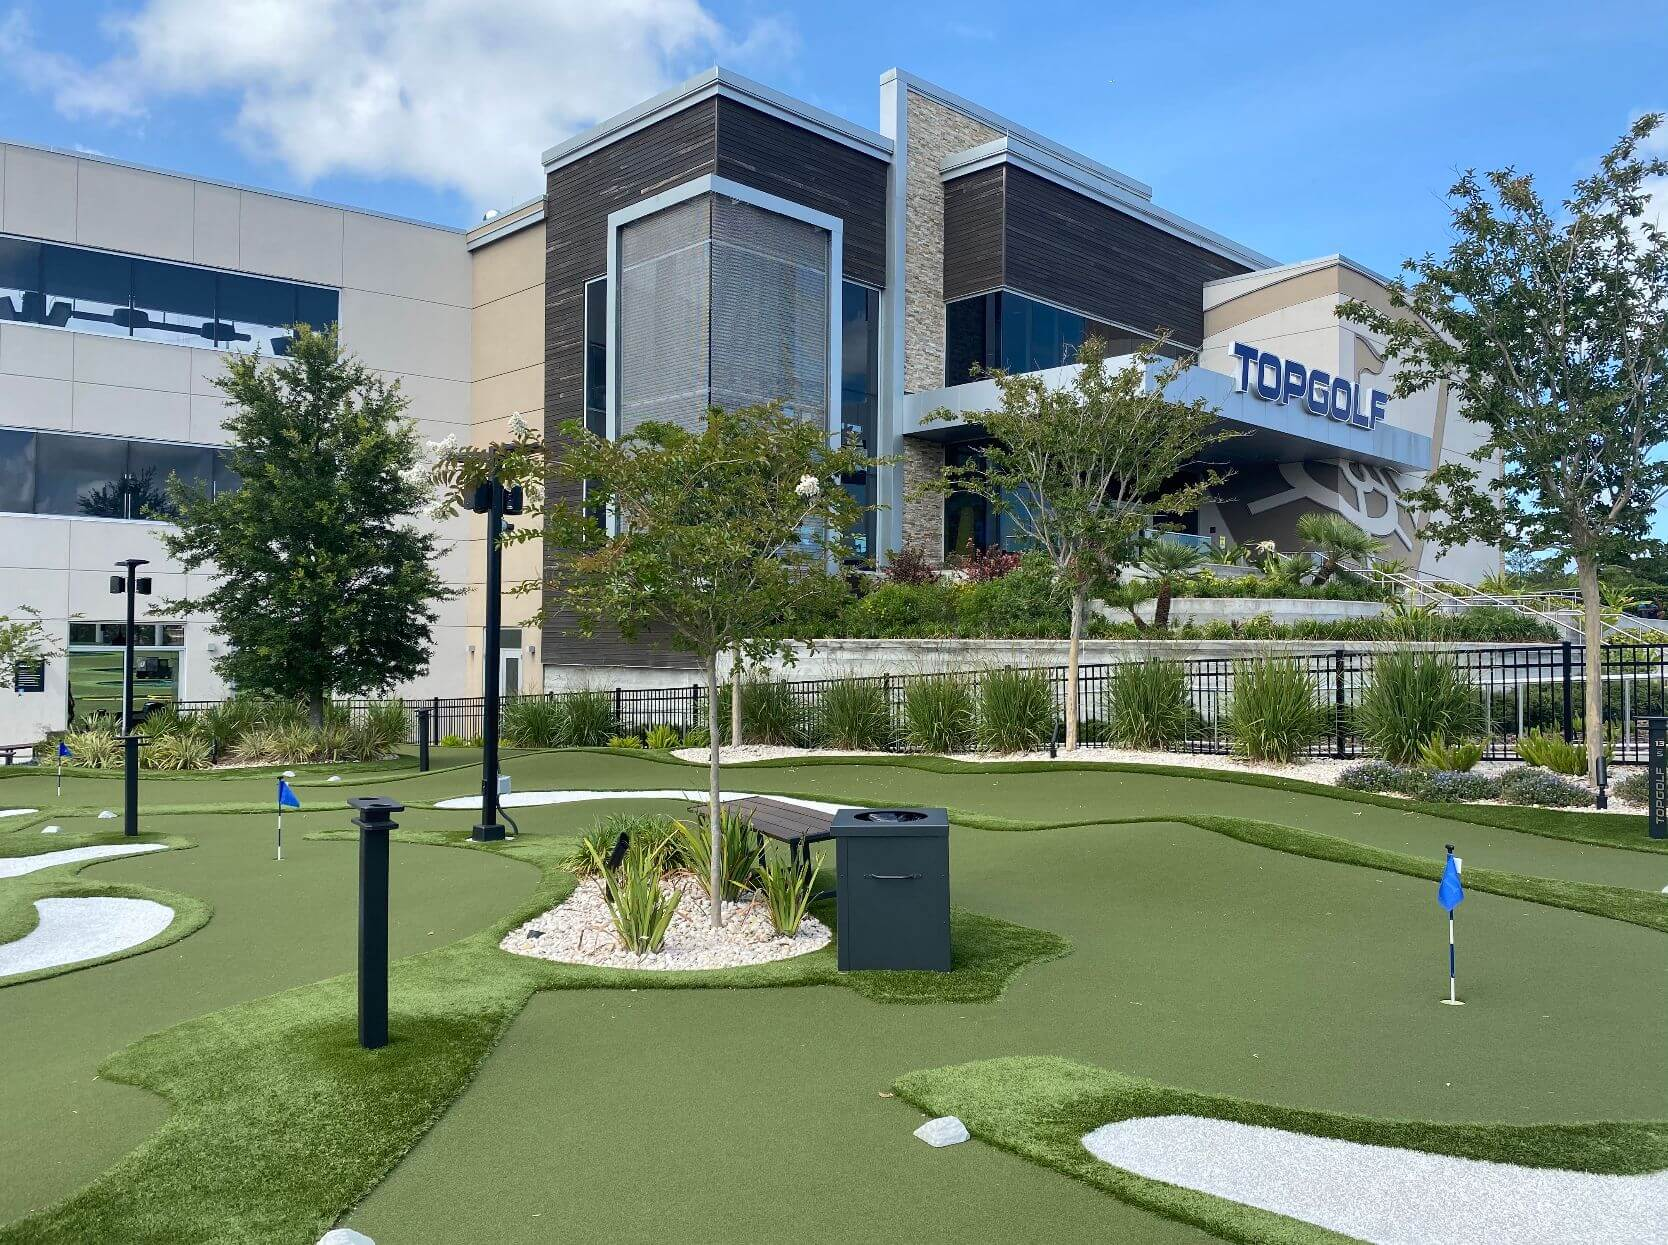 topgolf in jacksonville by SYNLawn